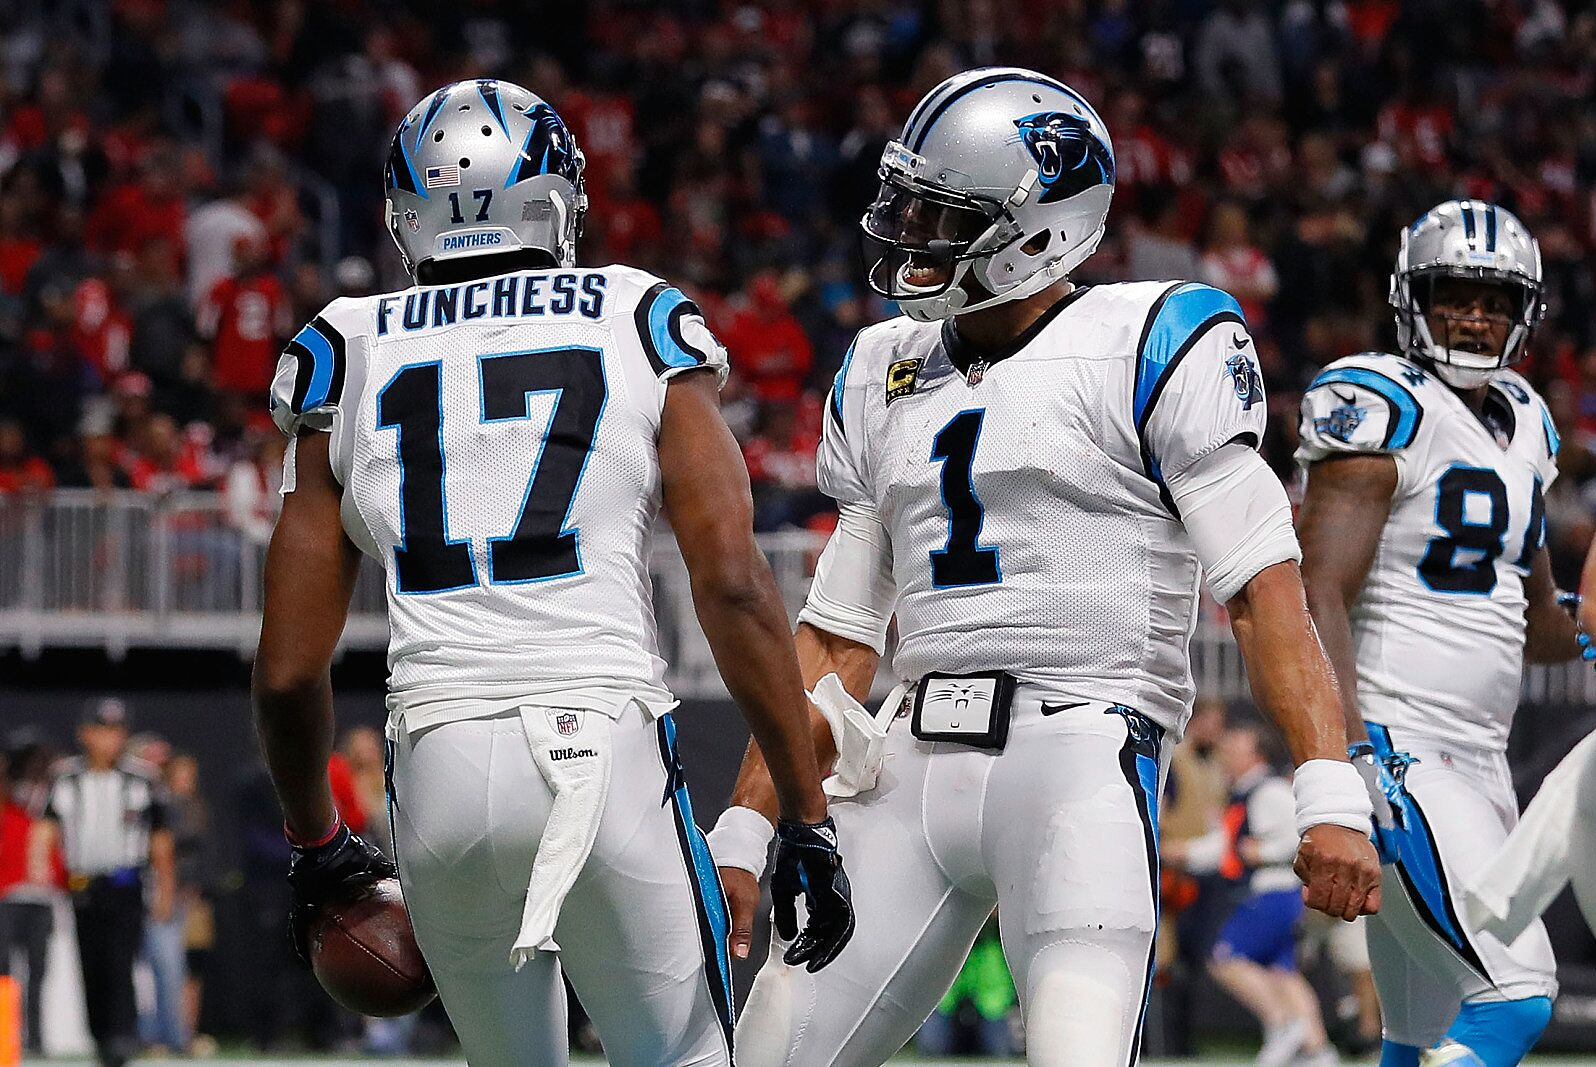 Carolina Panthers: Key players to watch against the Bengals